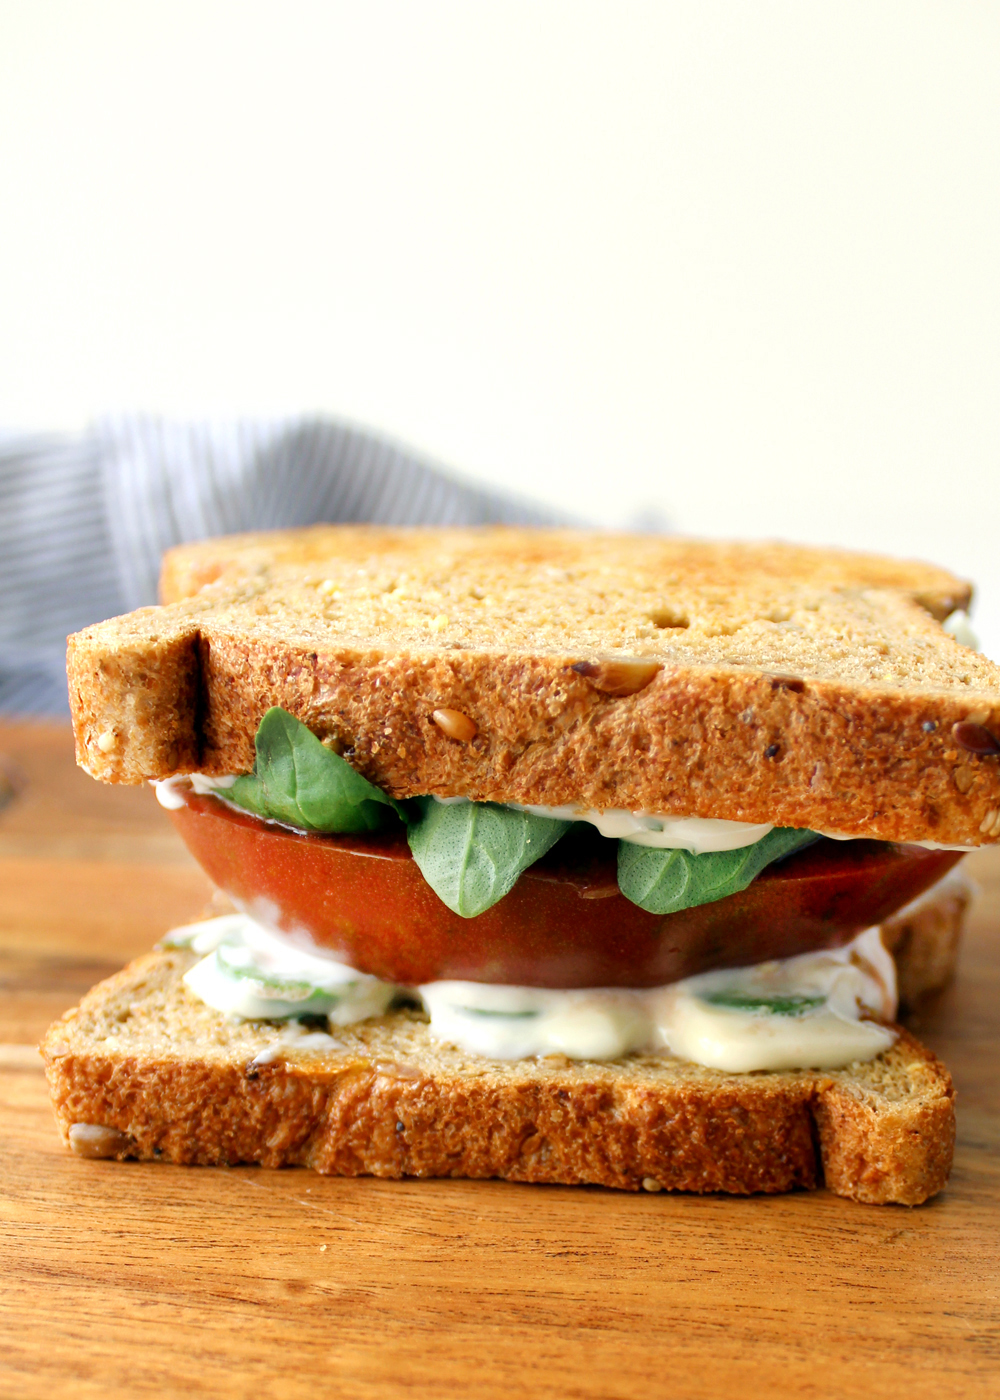 learn how to make this delicious, fresh tomato sandwich using an heirloom tomato and basil